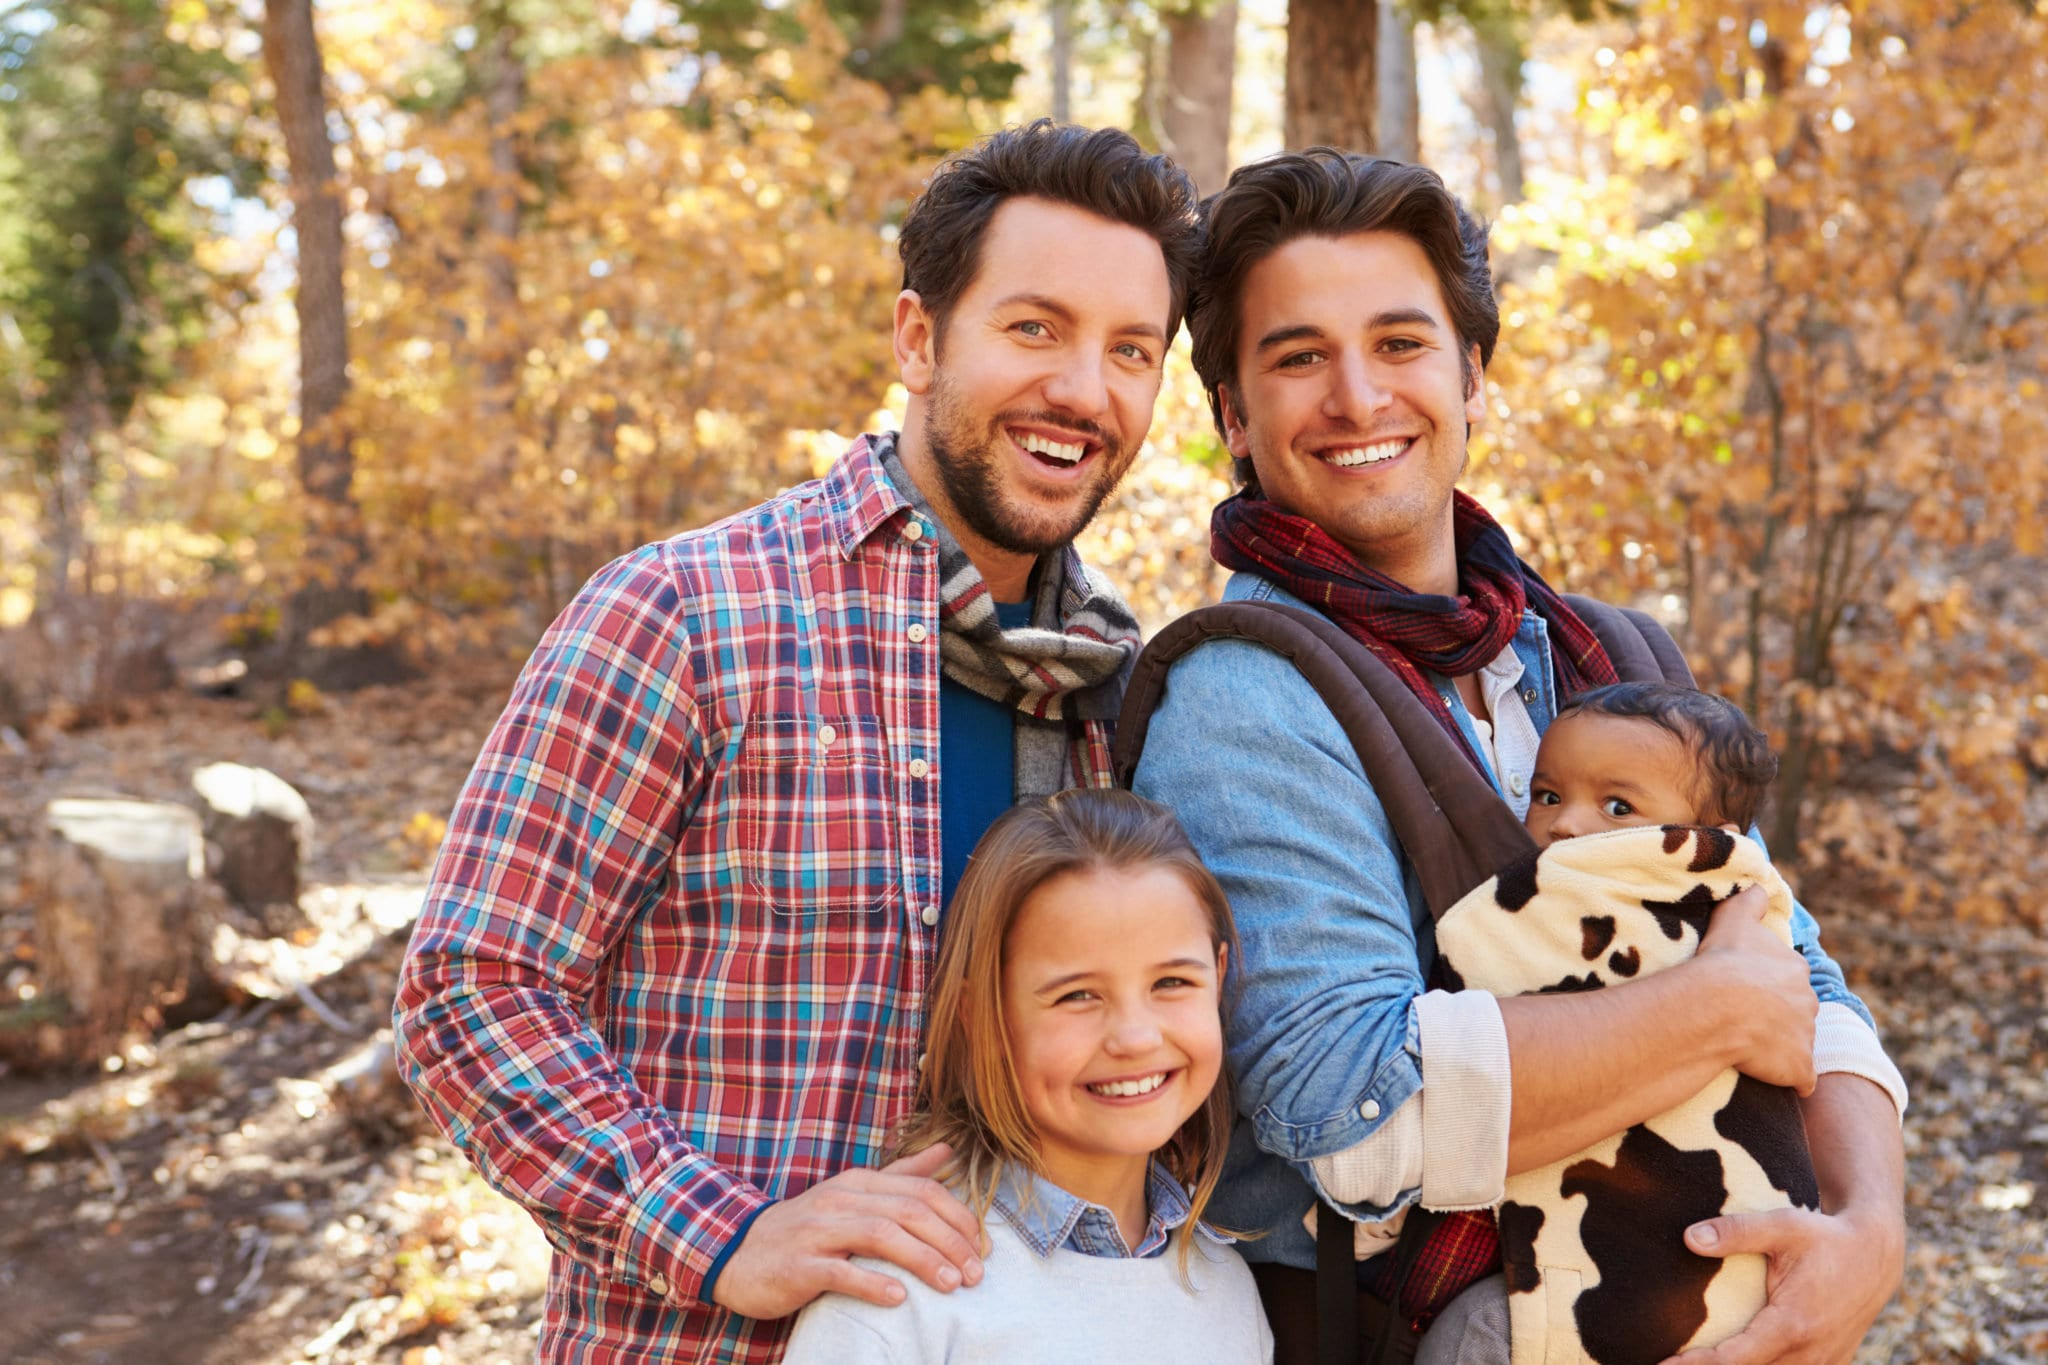 Gay Male Couple With Children - Surrogacy